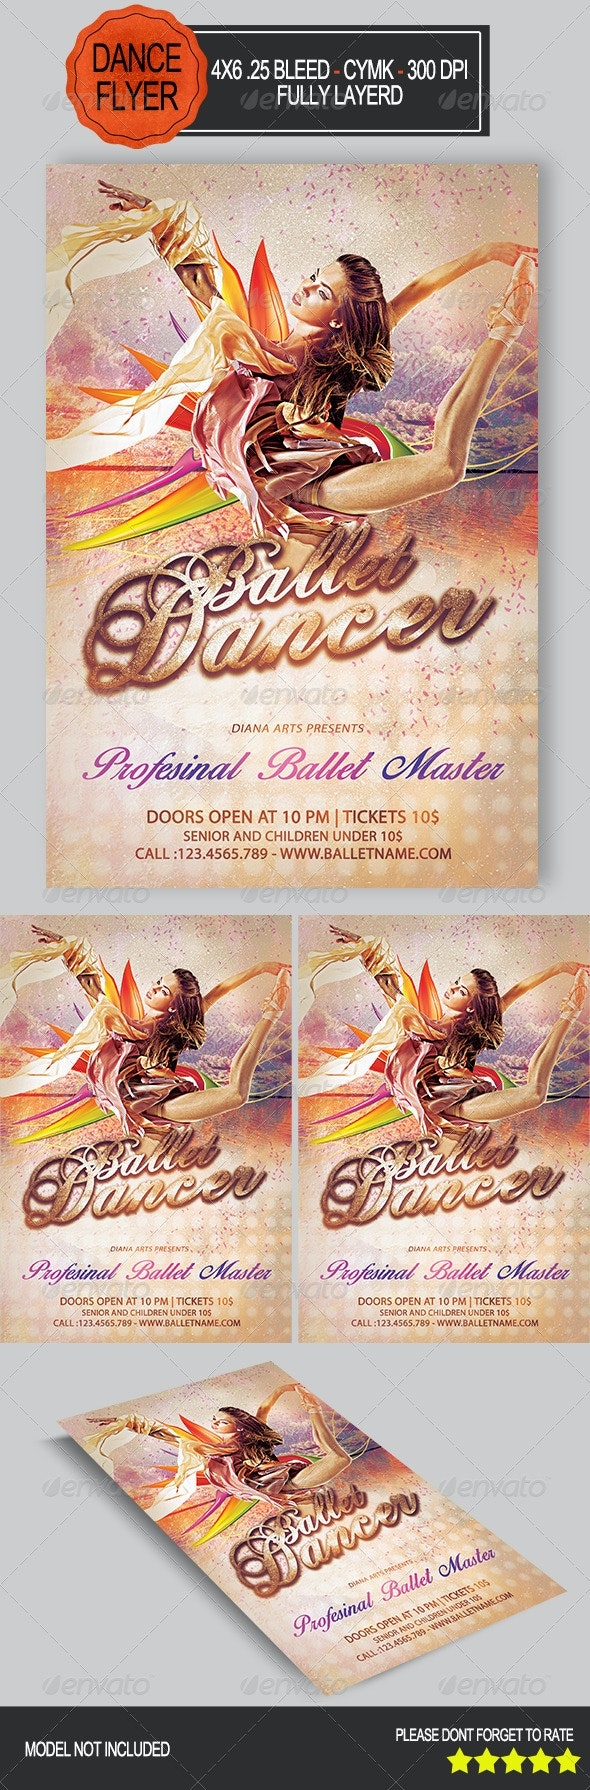 Ballet Dancer Flyer   - Concerts Events